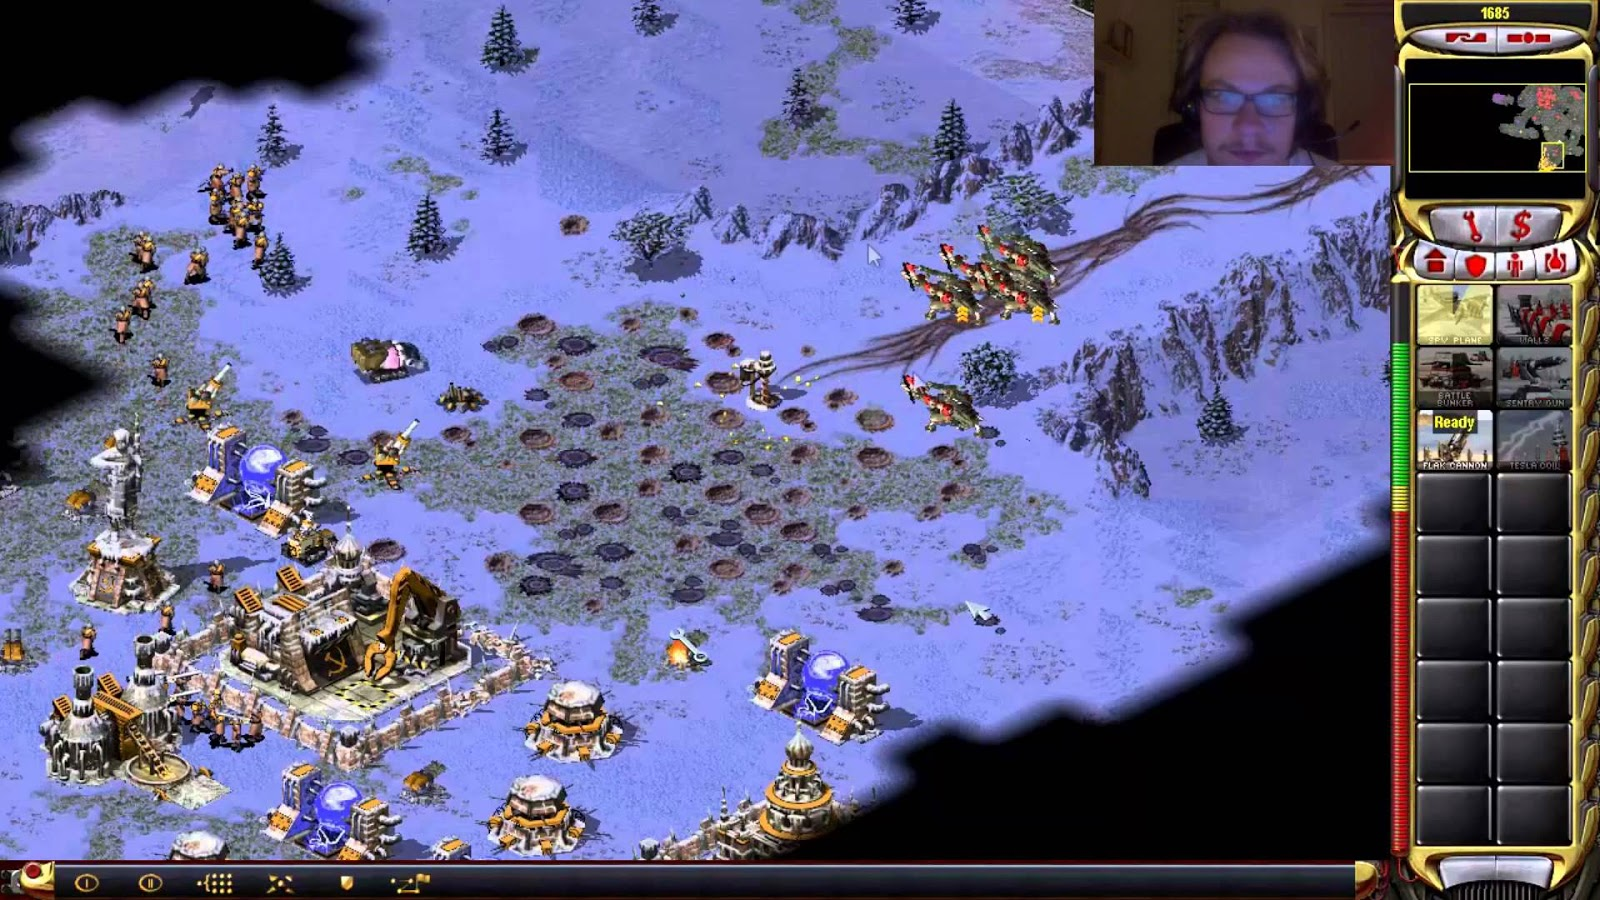 download red alert 2 full game for pc free